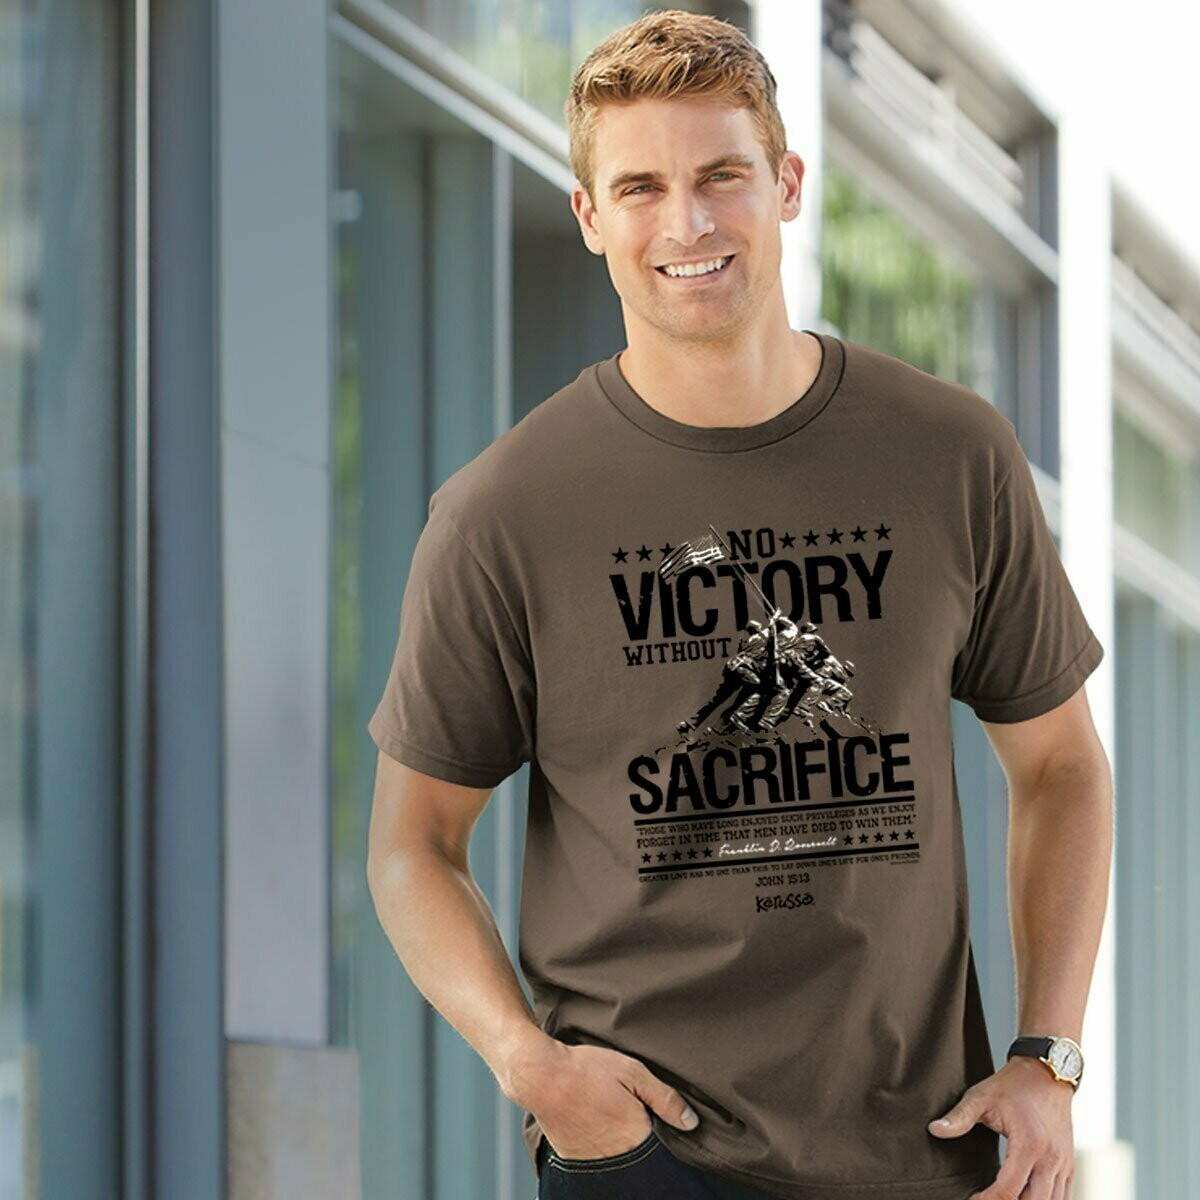 No Victory Without Sacrifice Adult T-Shirt - FREE Shipping